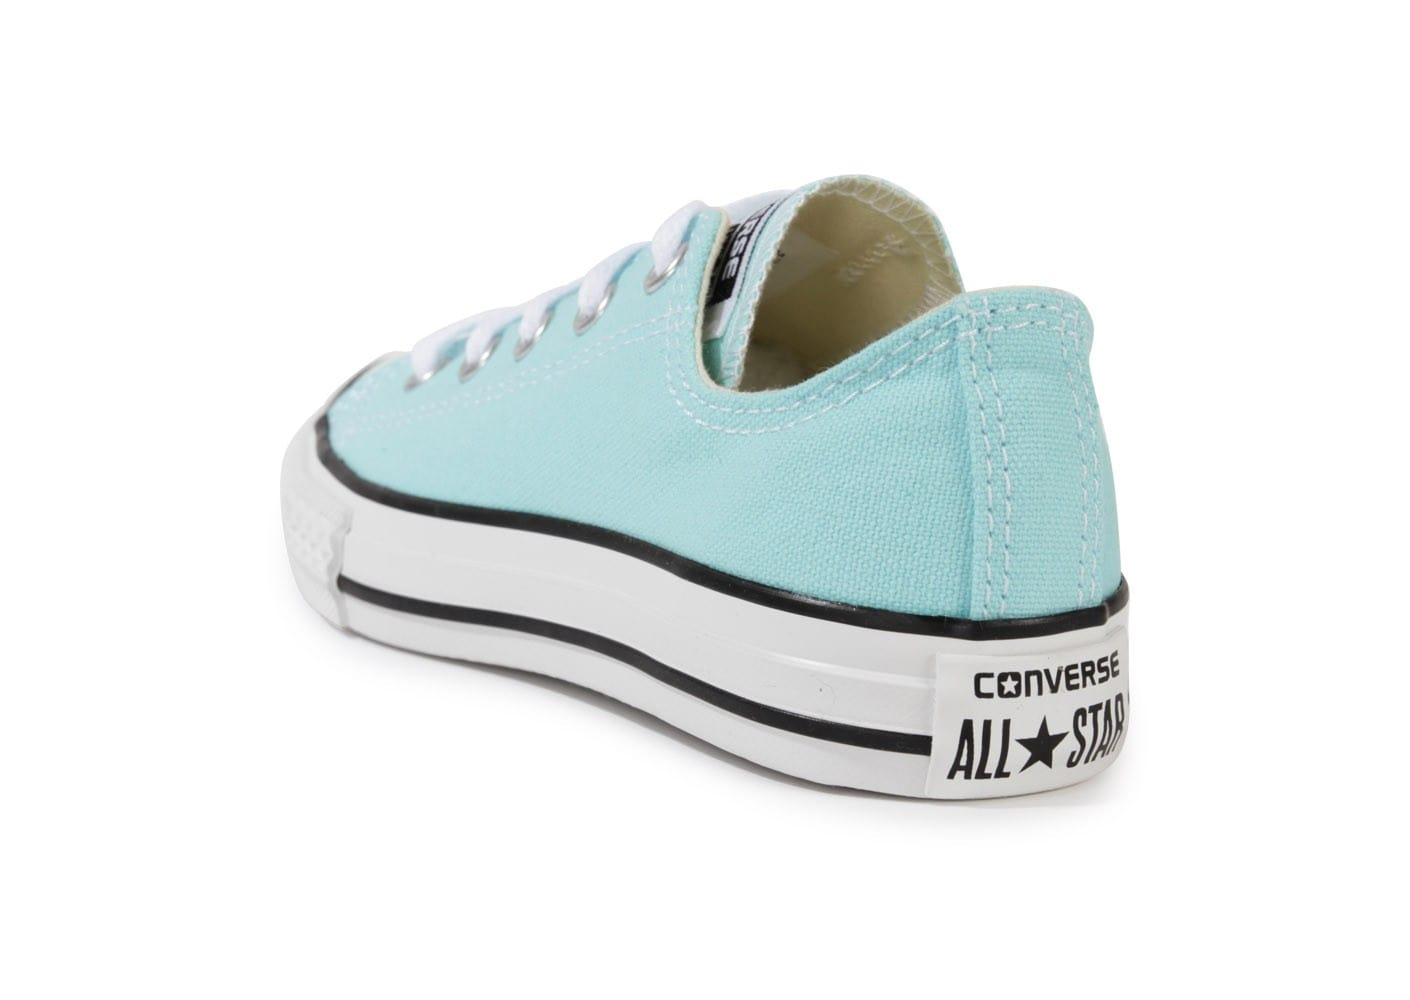 Converse Pas Cher Blanche Taille 38